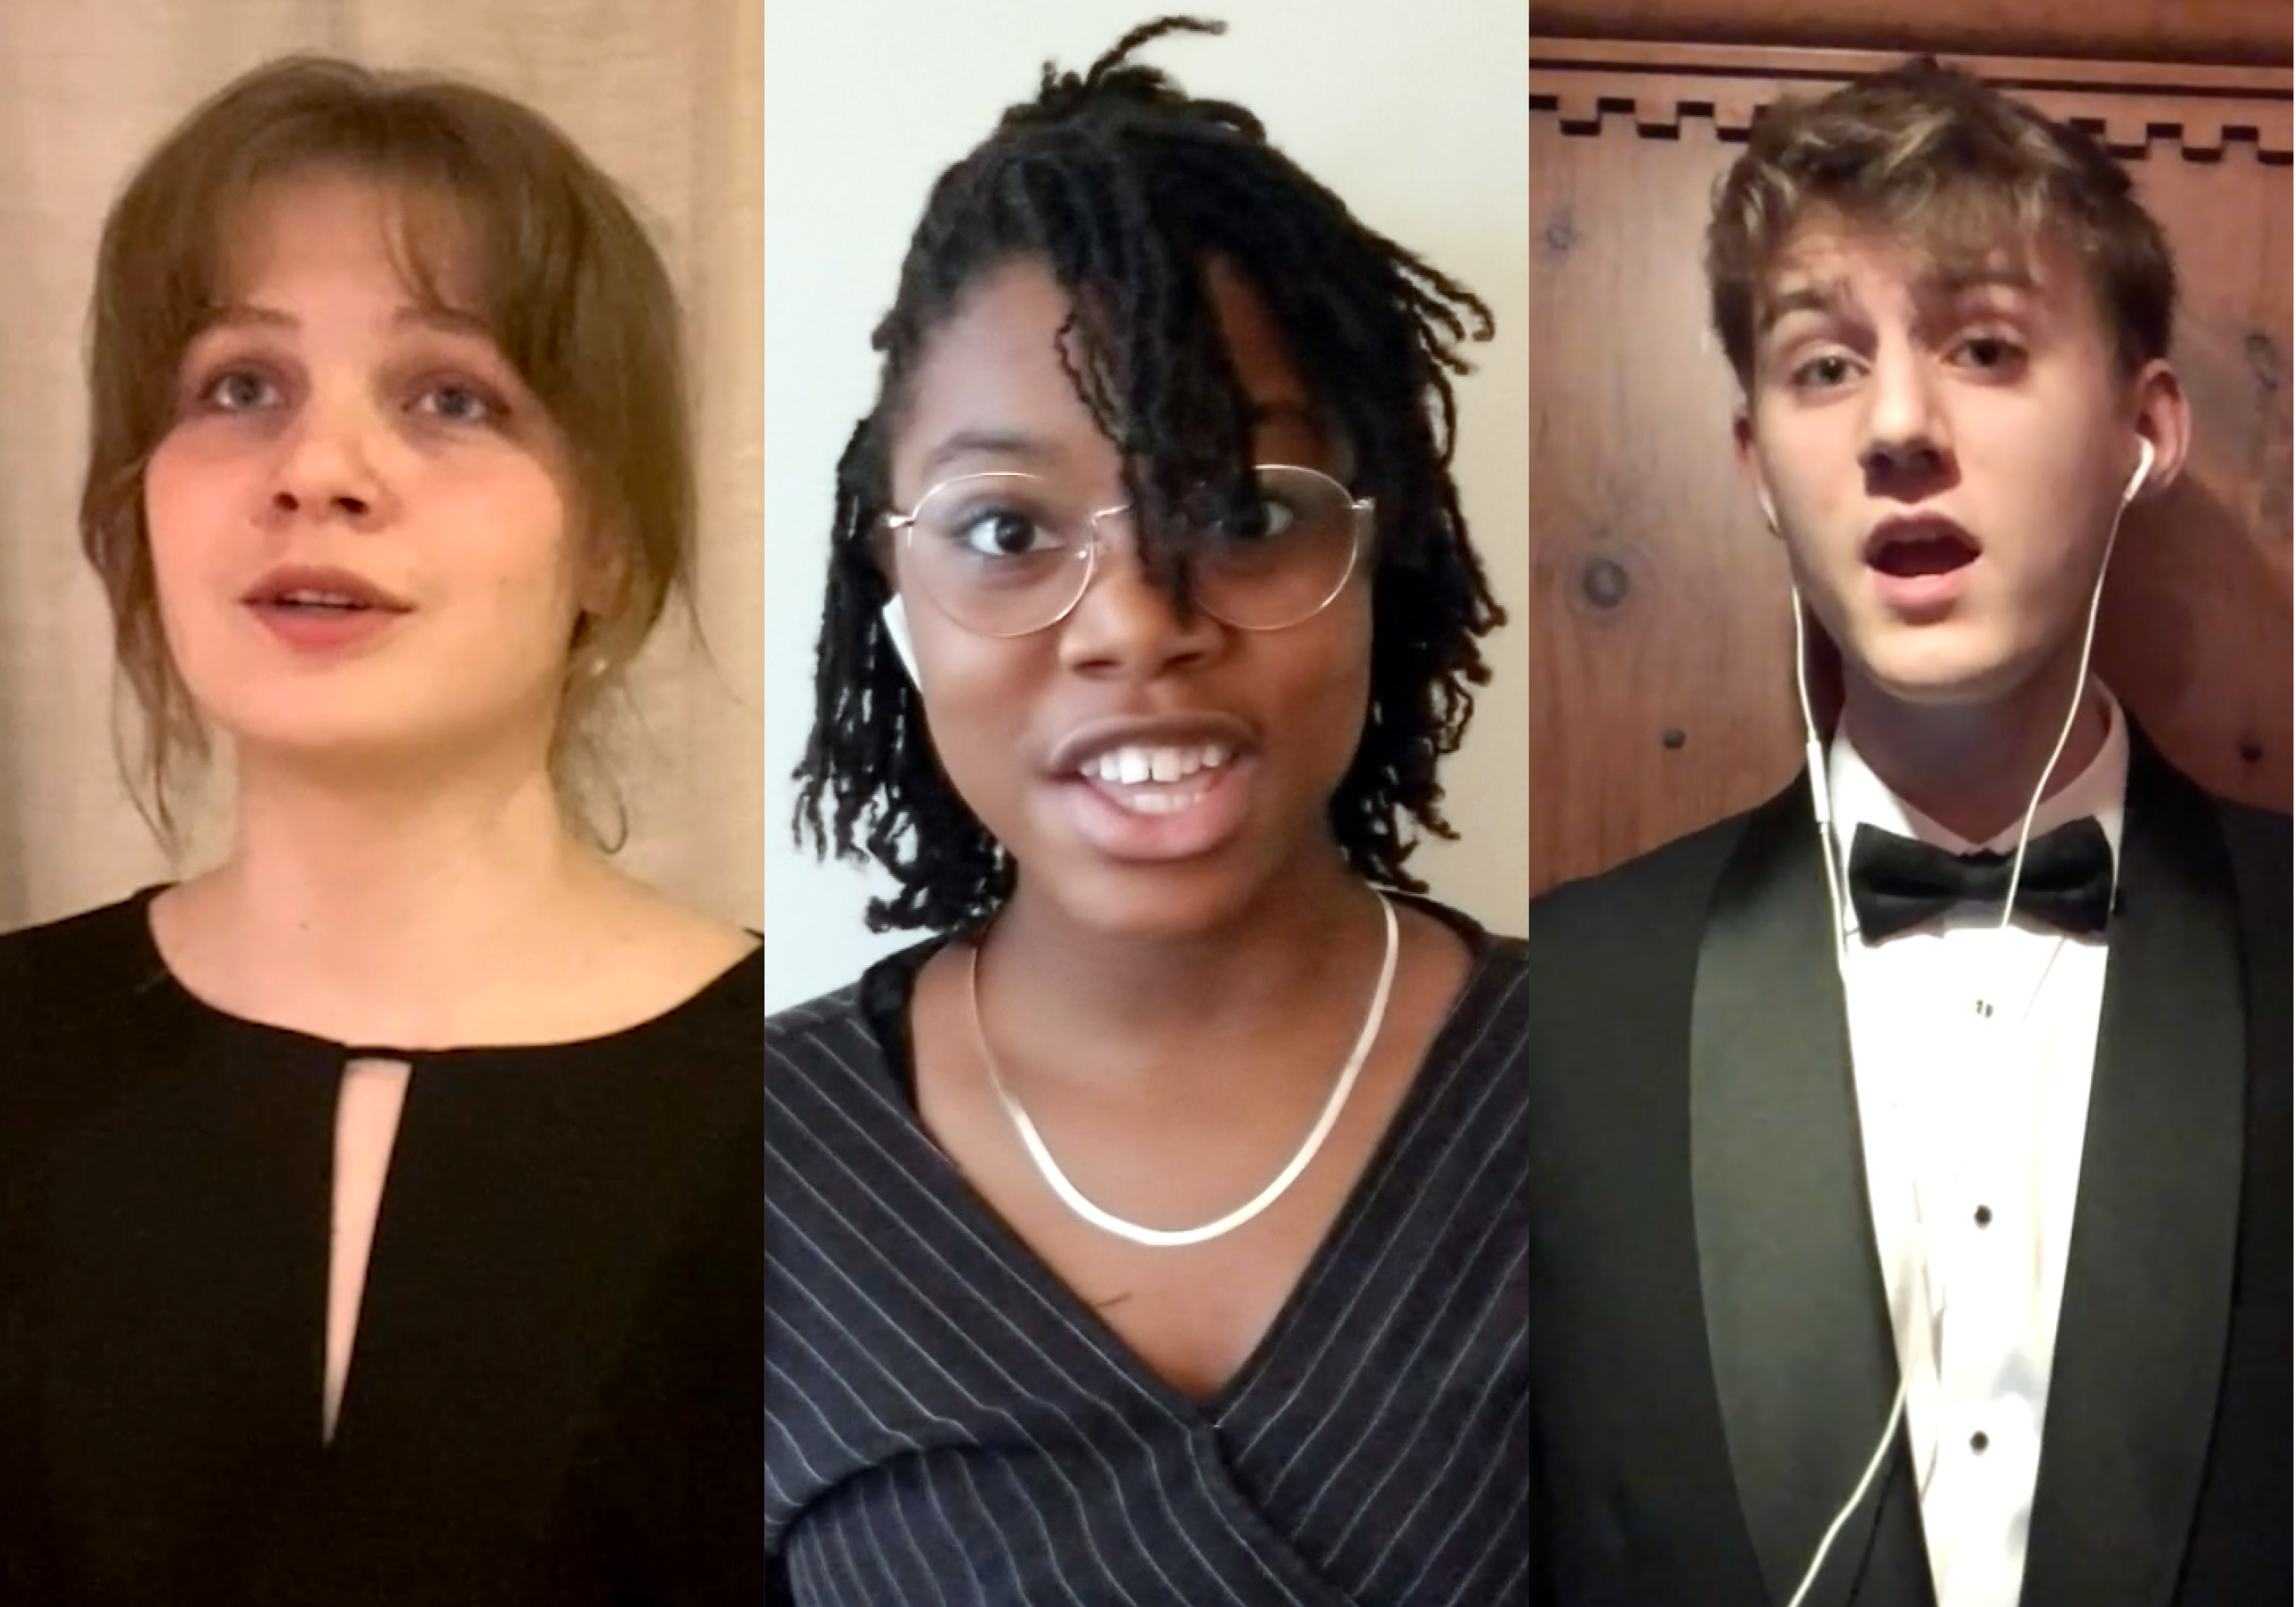 Collage of young singers